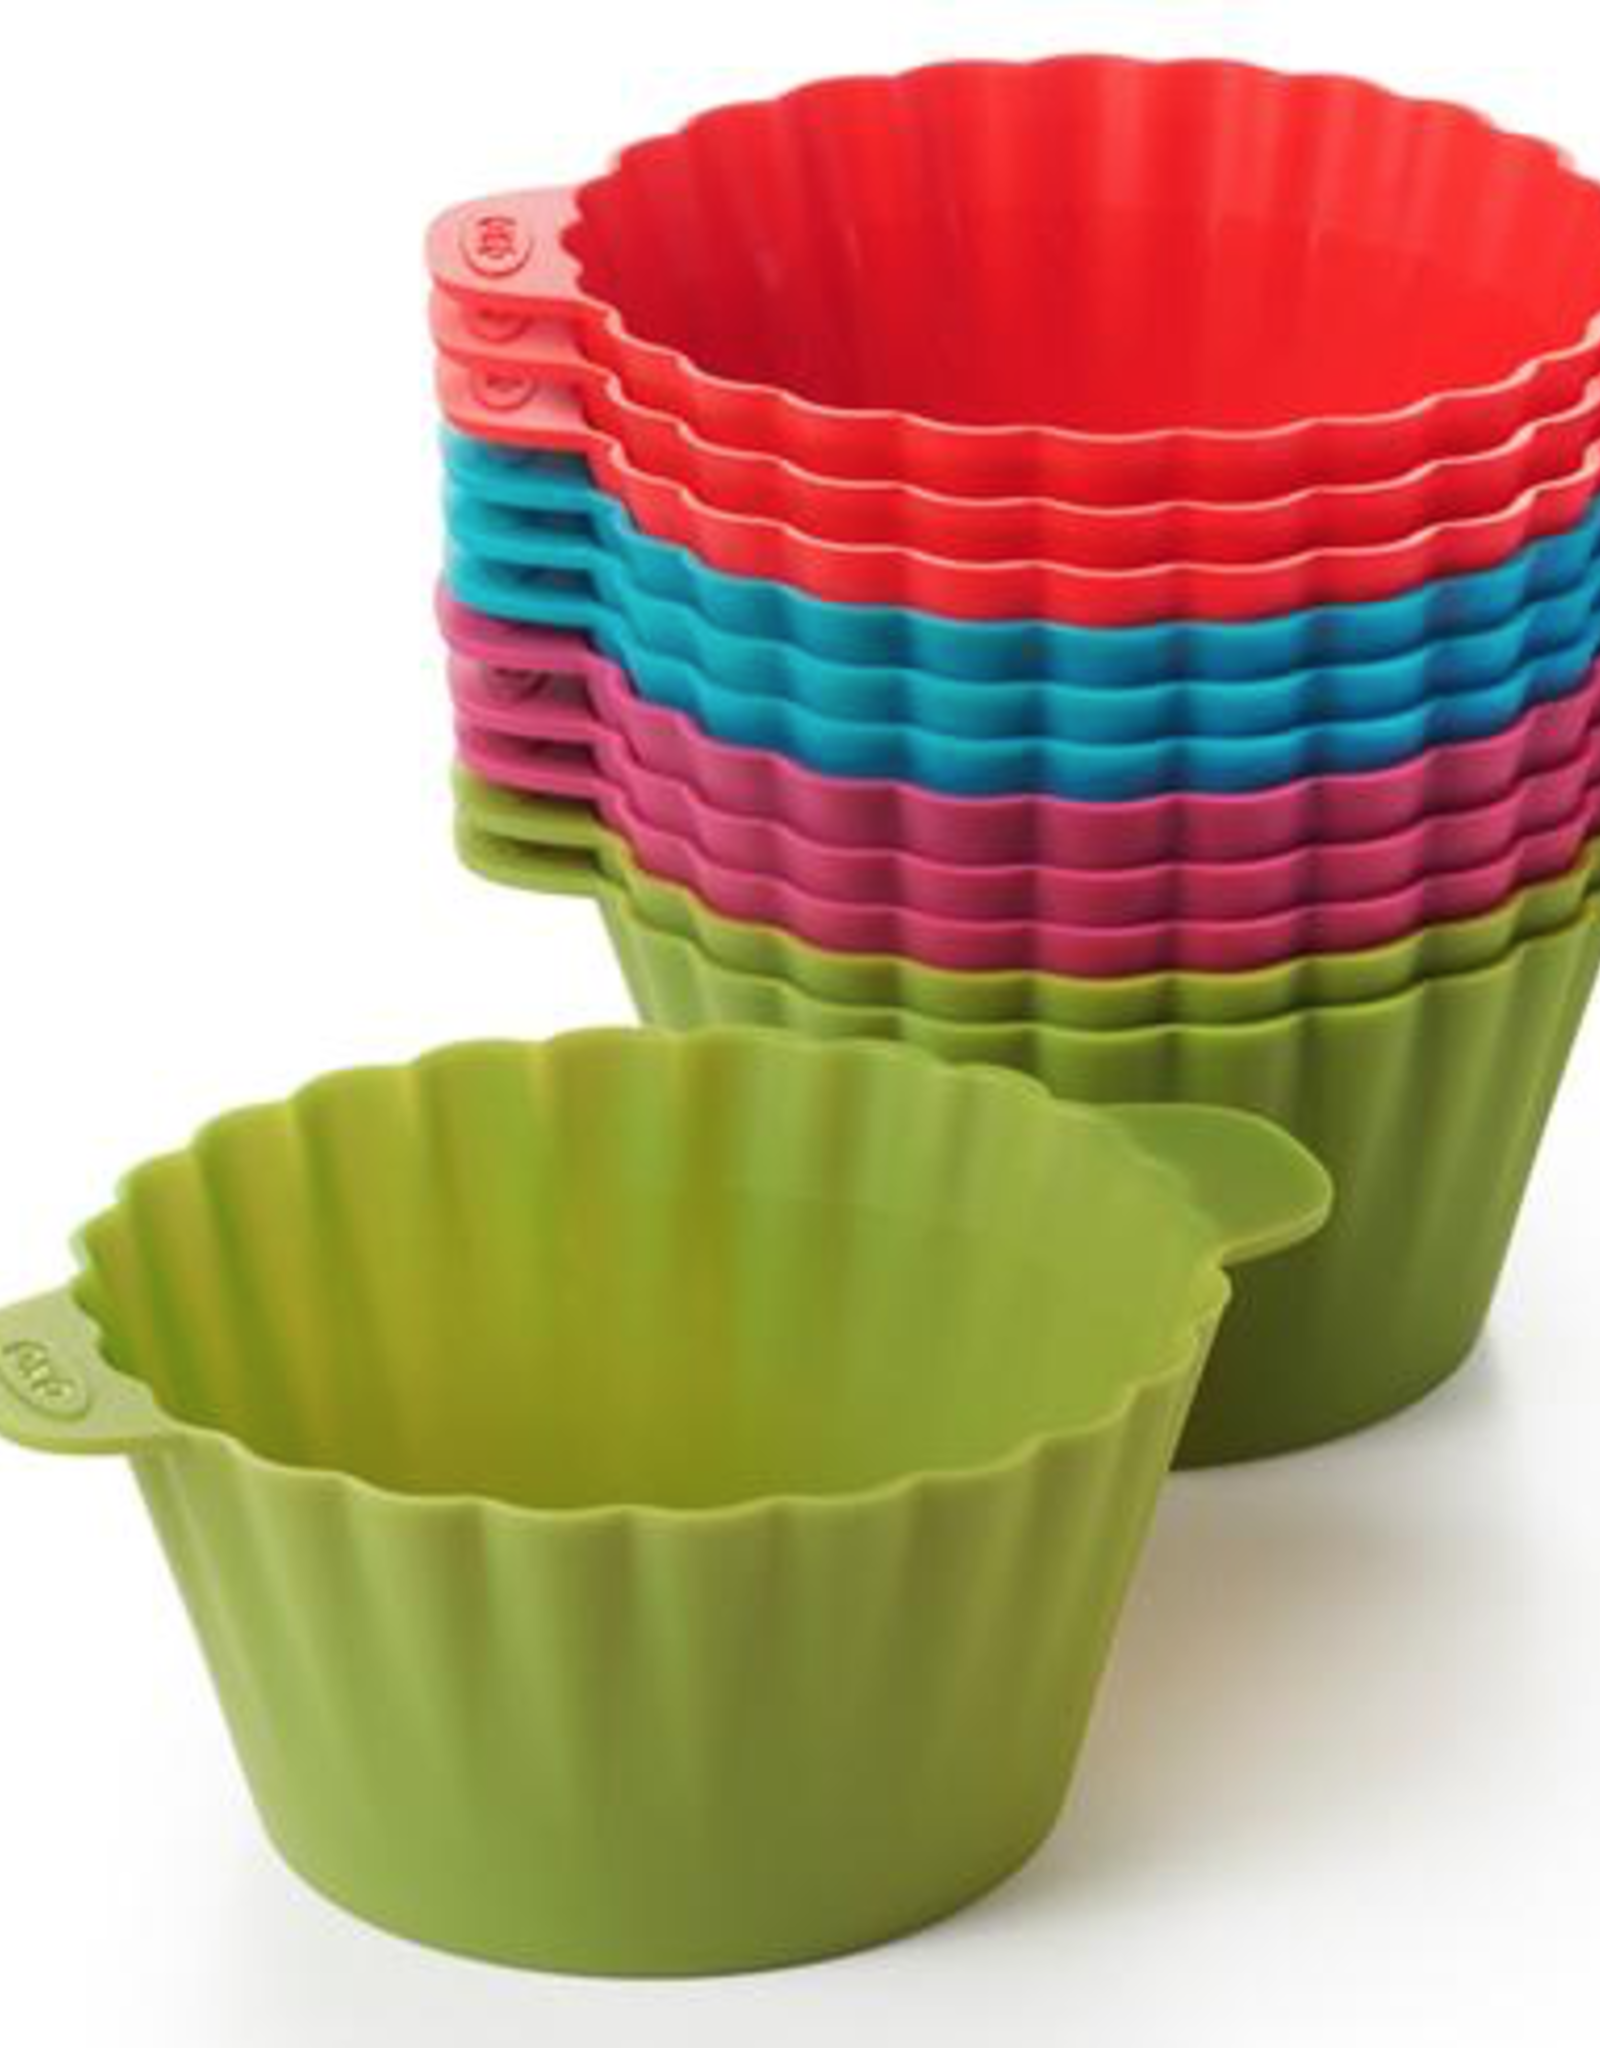 OXO OXO Silicone Baking Cups, Asst'd Set/12